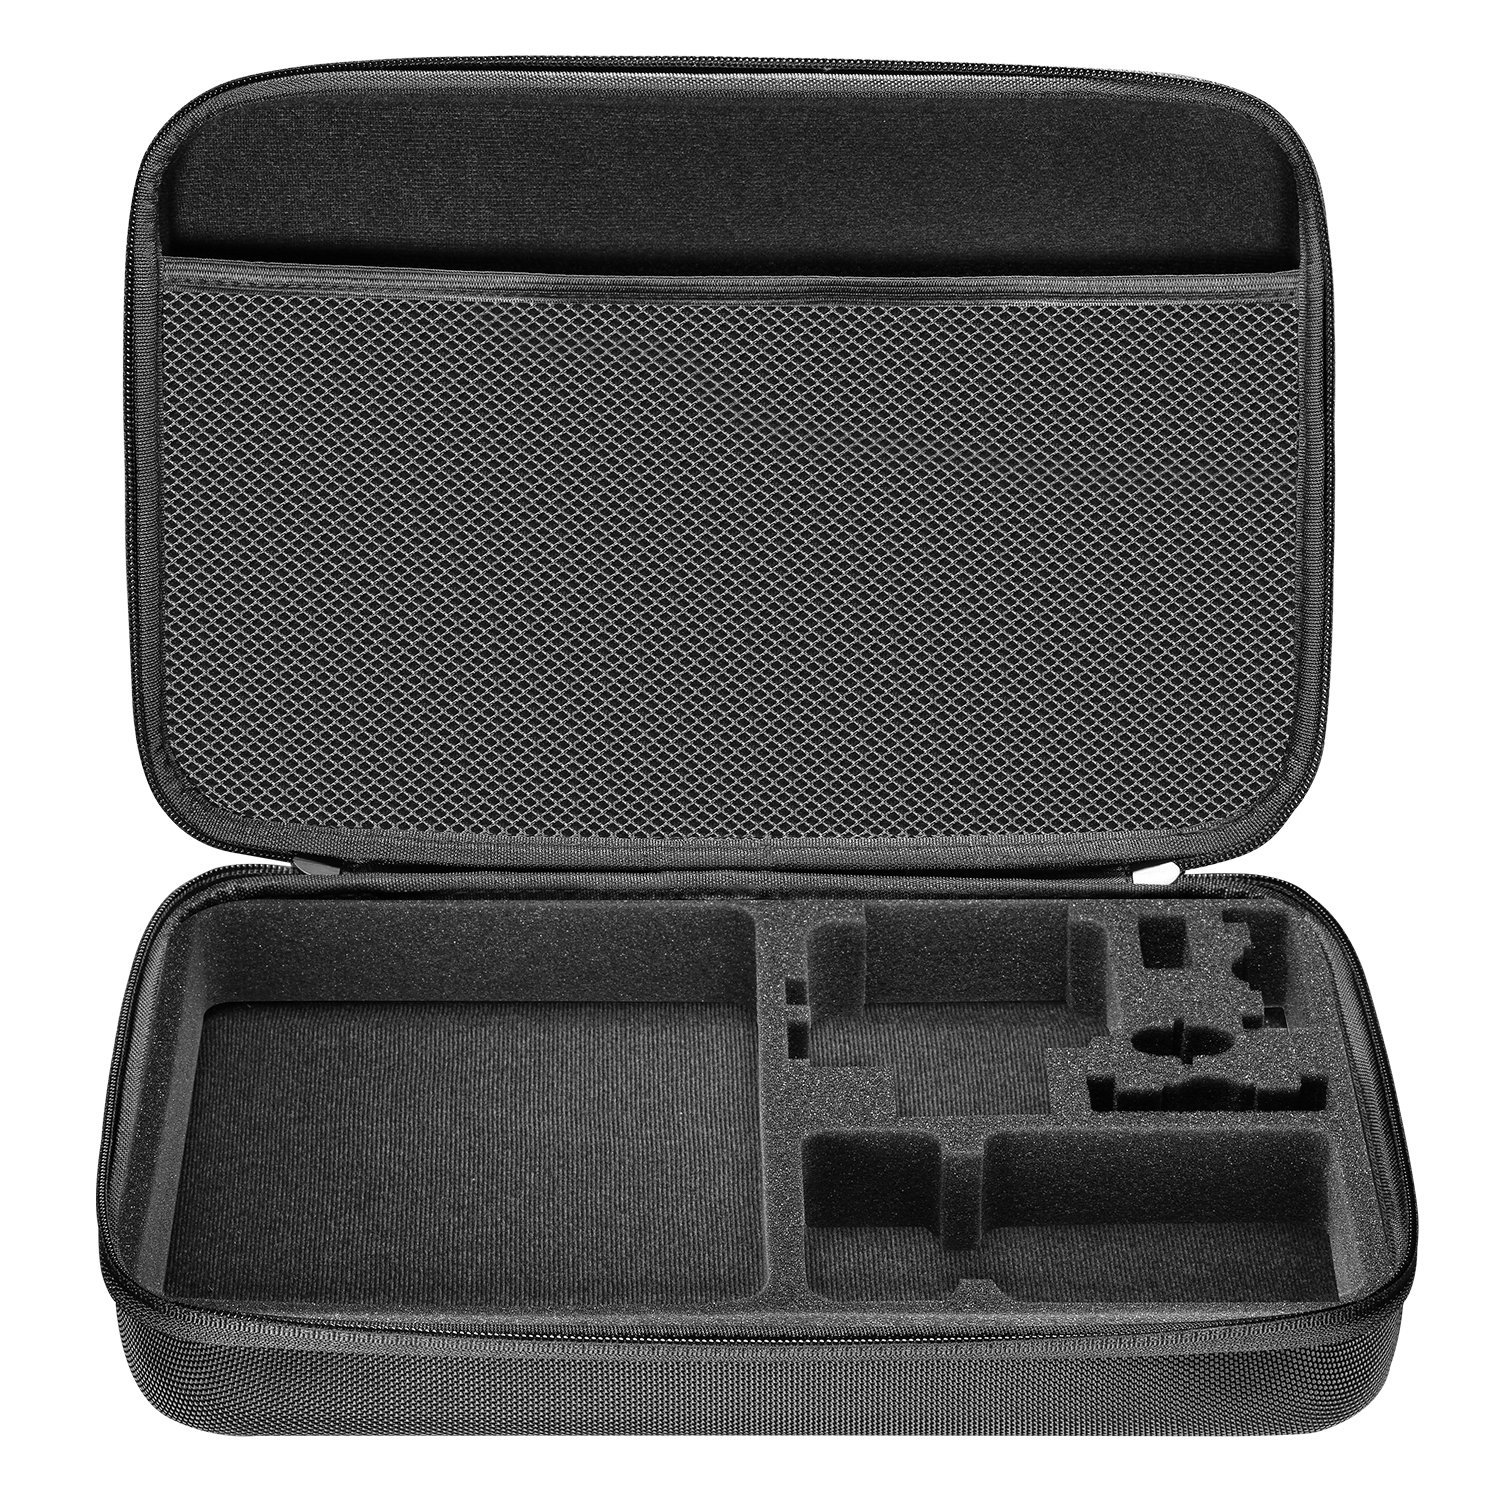 EVA 12 8x8 46x2 48 32 5x21 5x6 3cm Shockproof Carrying Case for GoPro Hero Session